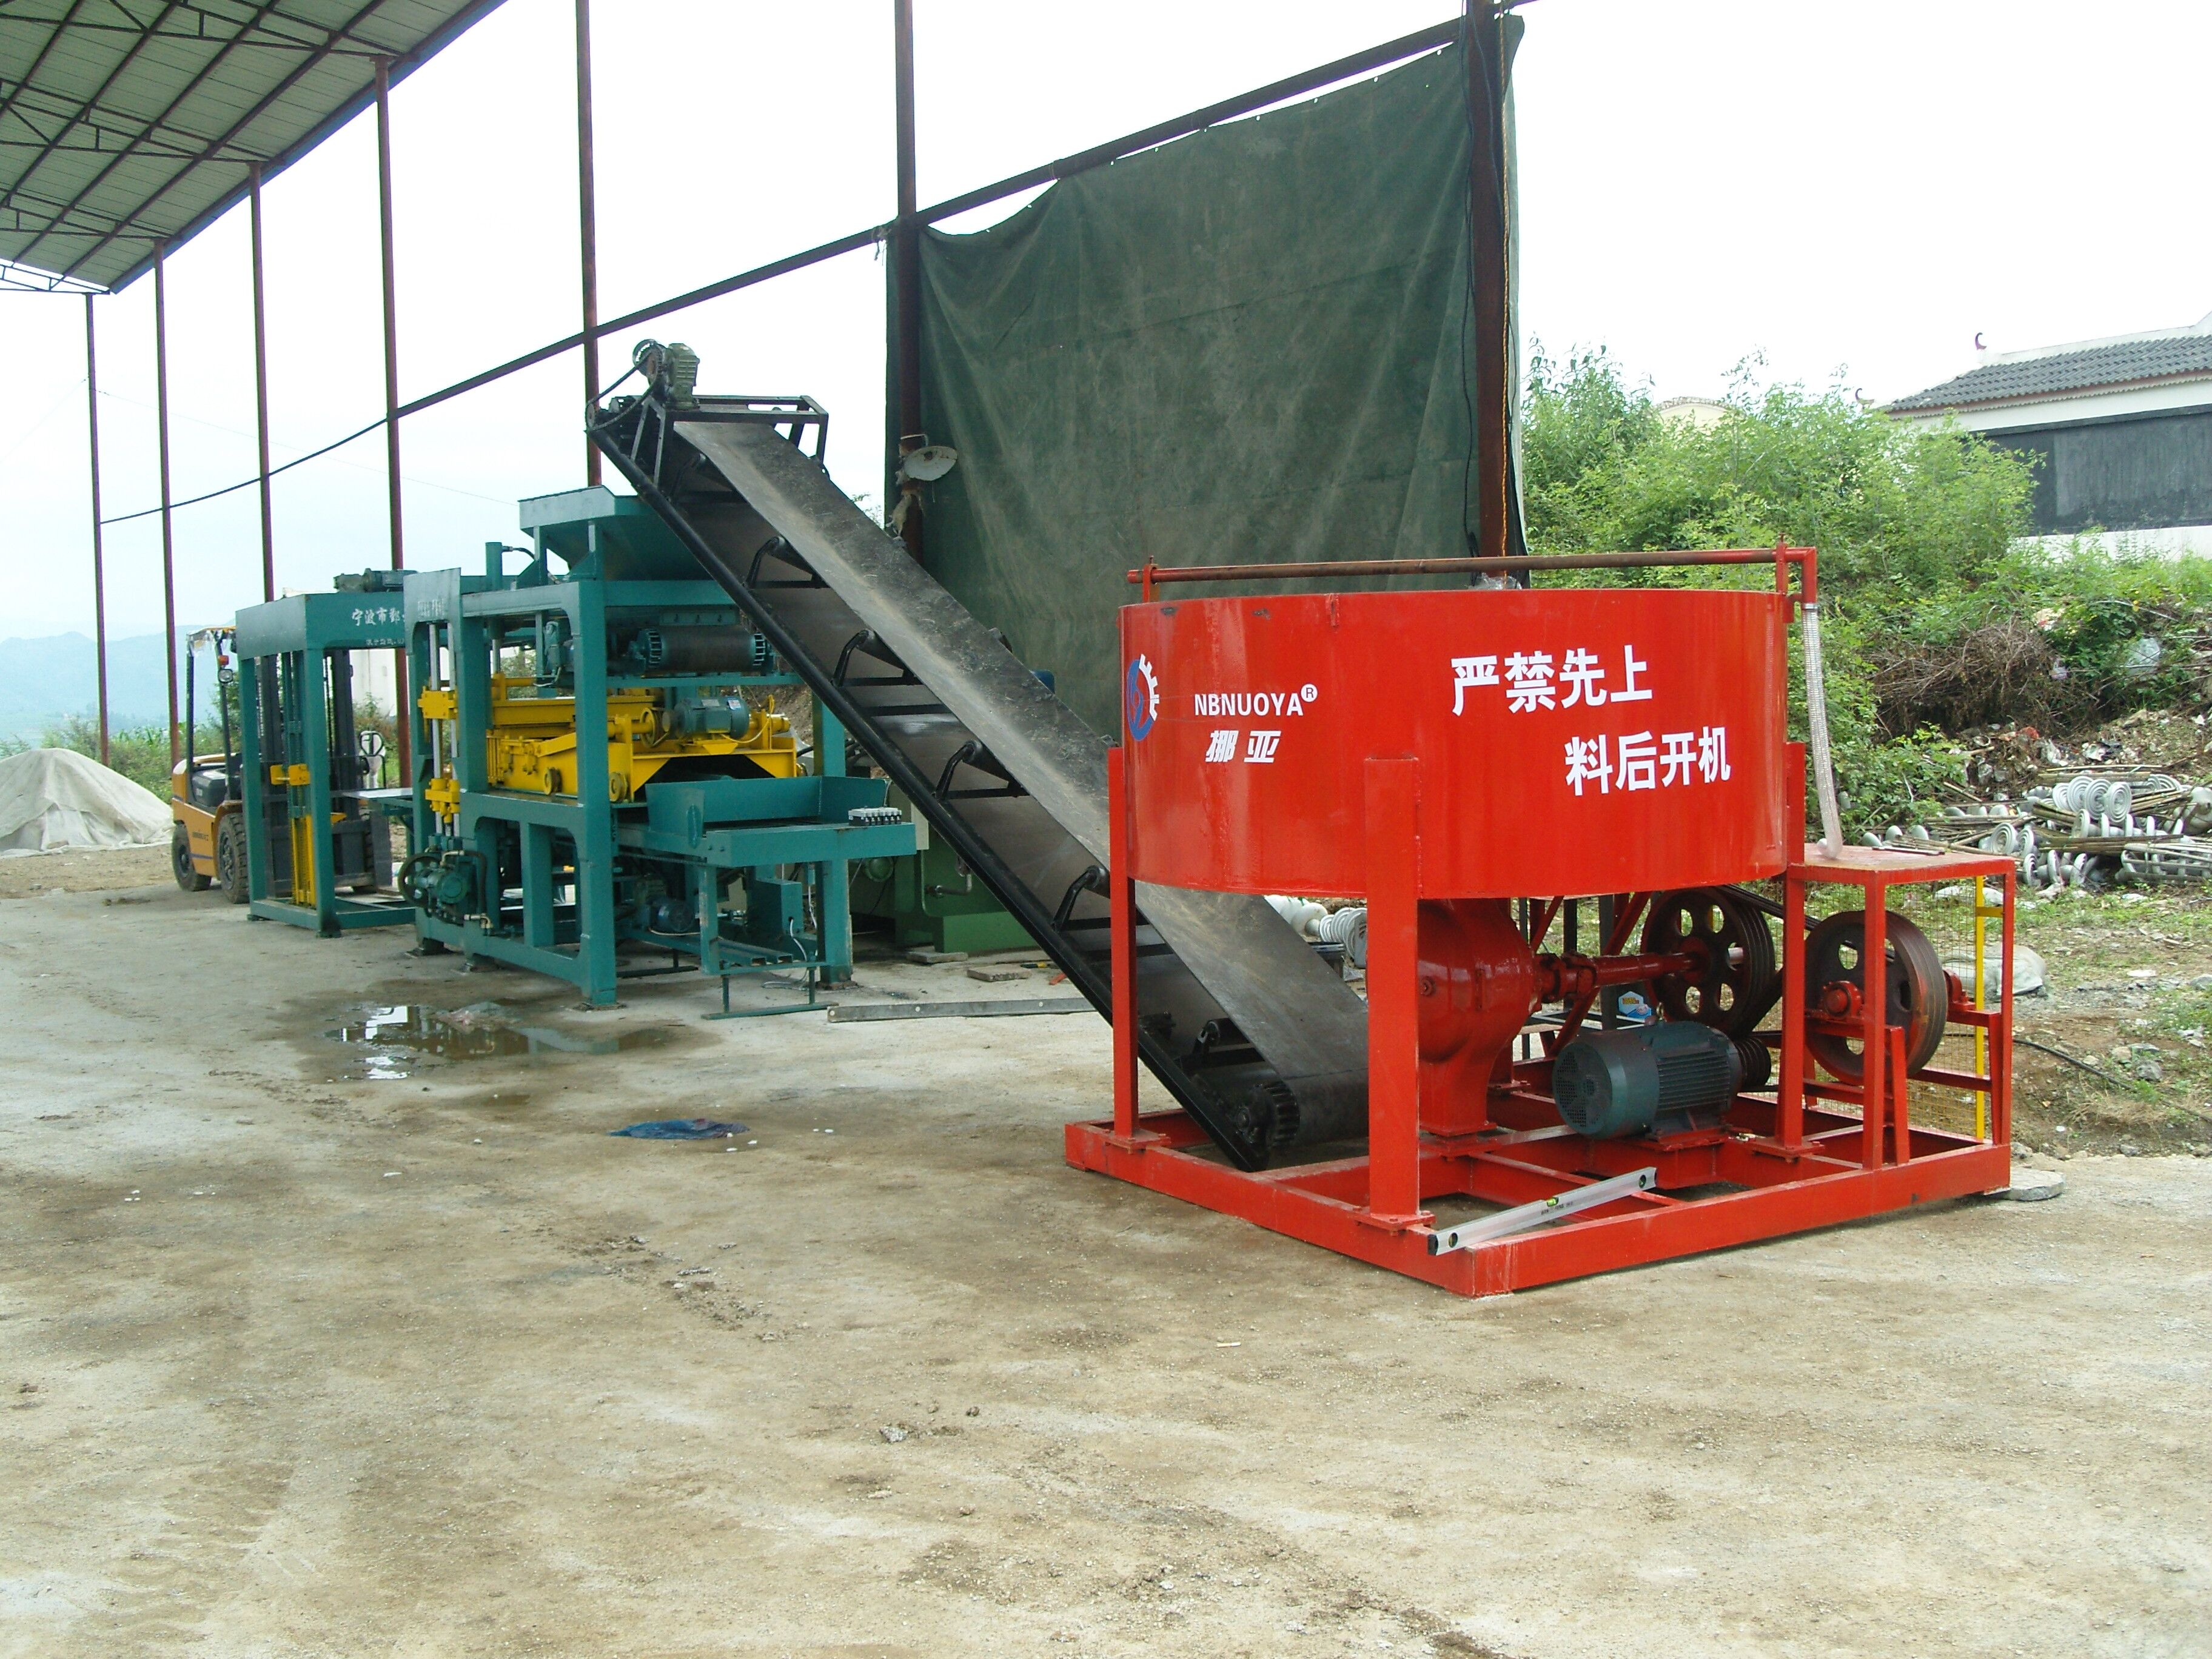 cement brick making machine semi-auto hand loader star7s-10sec machinery Featured Image